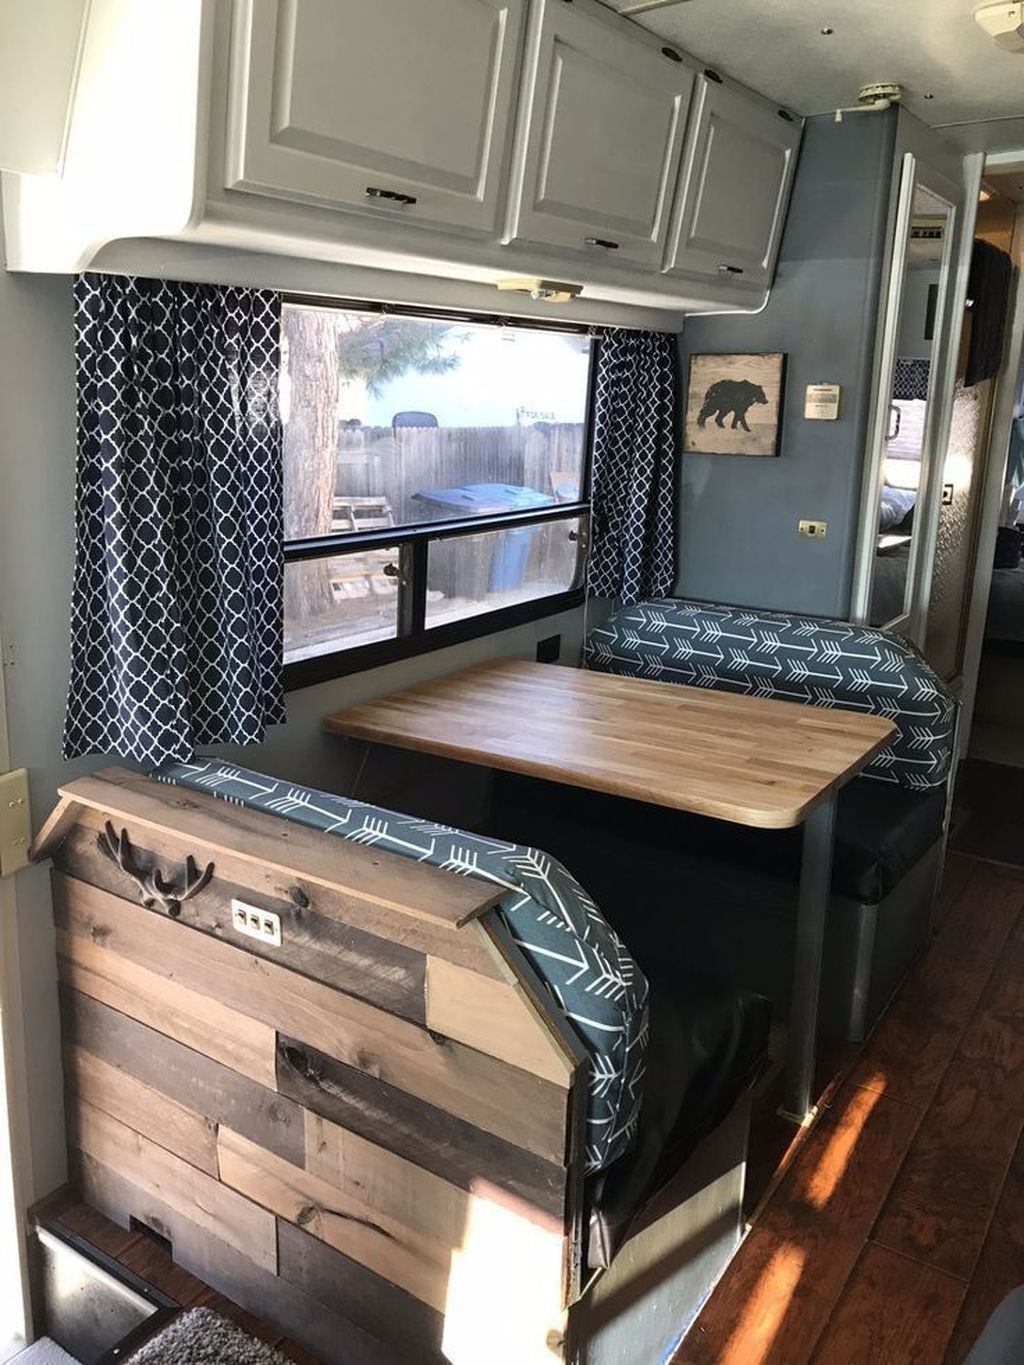 Awesome Rv Design Ideas That Looks Cool25